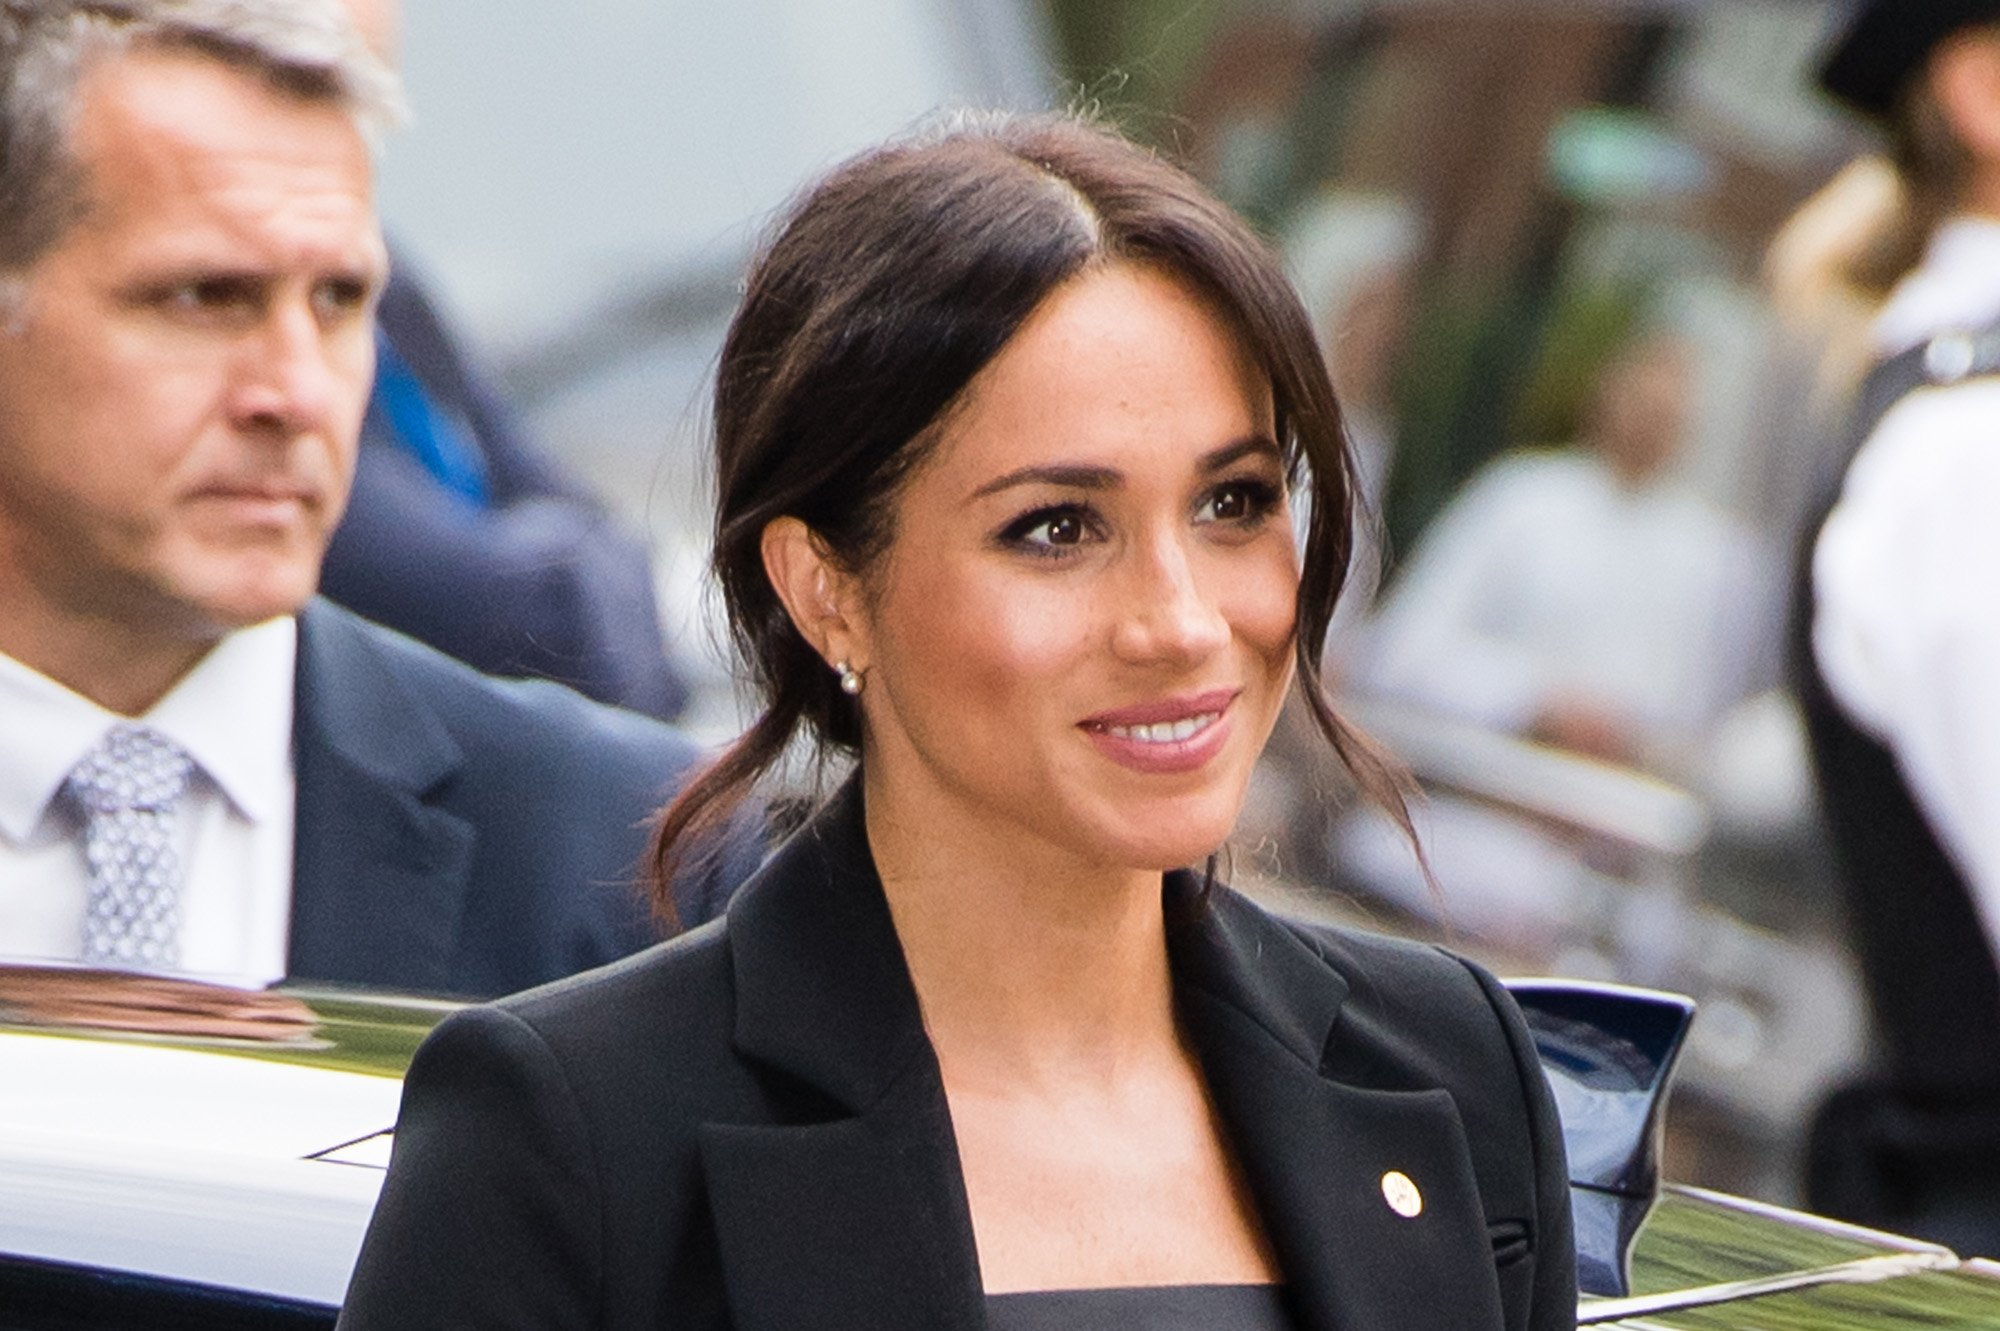 Meghan Markle Reflects on Experience With Racism in Resurfaced Video